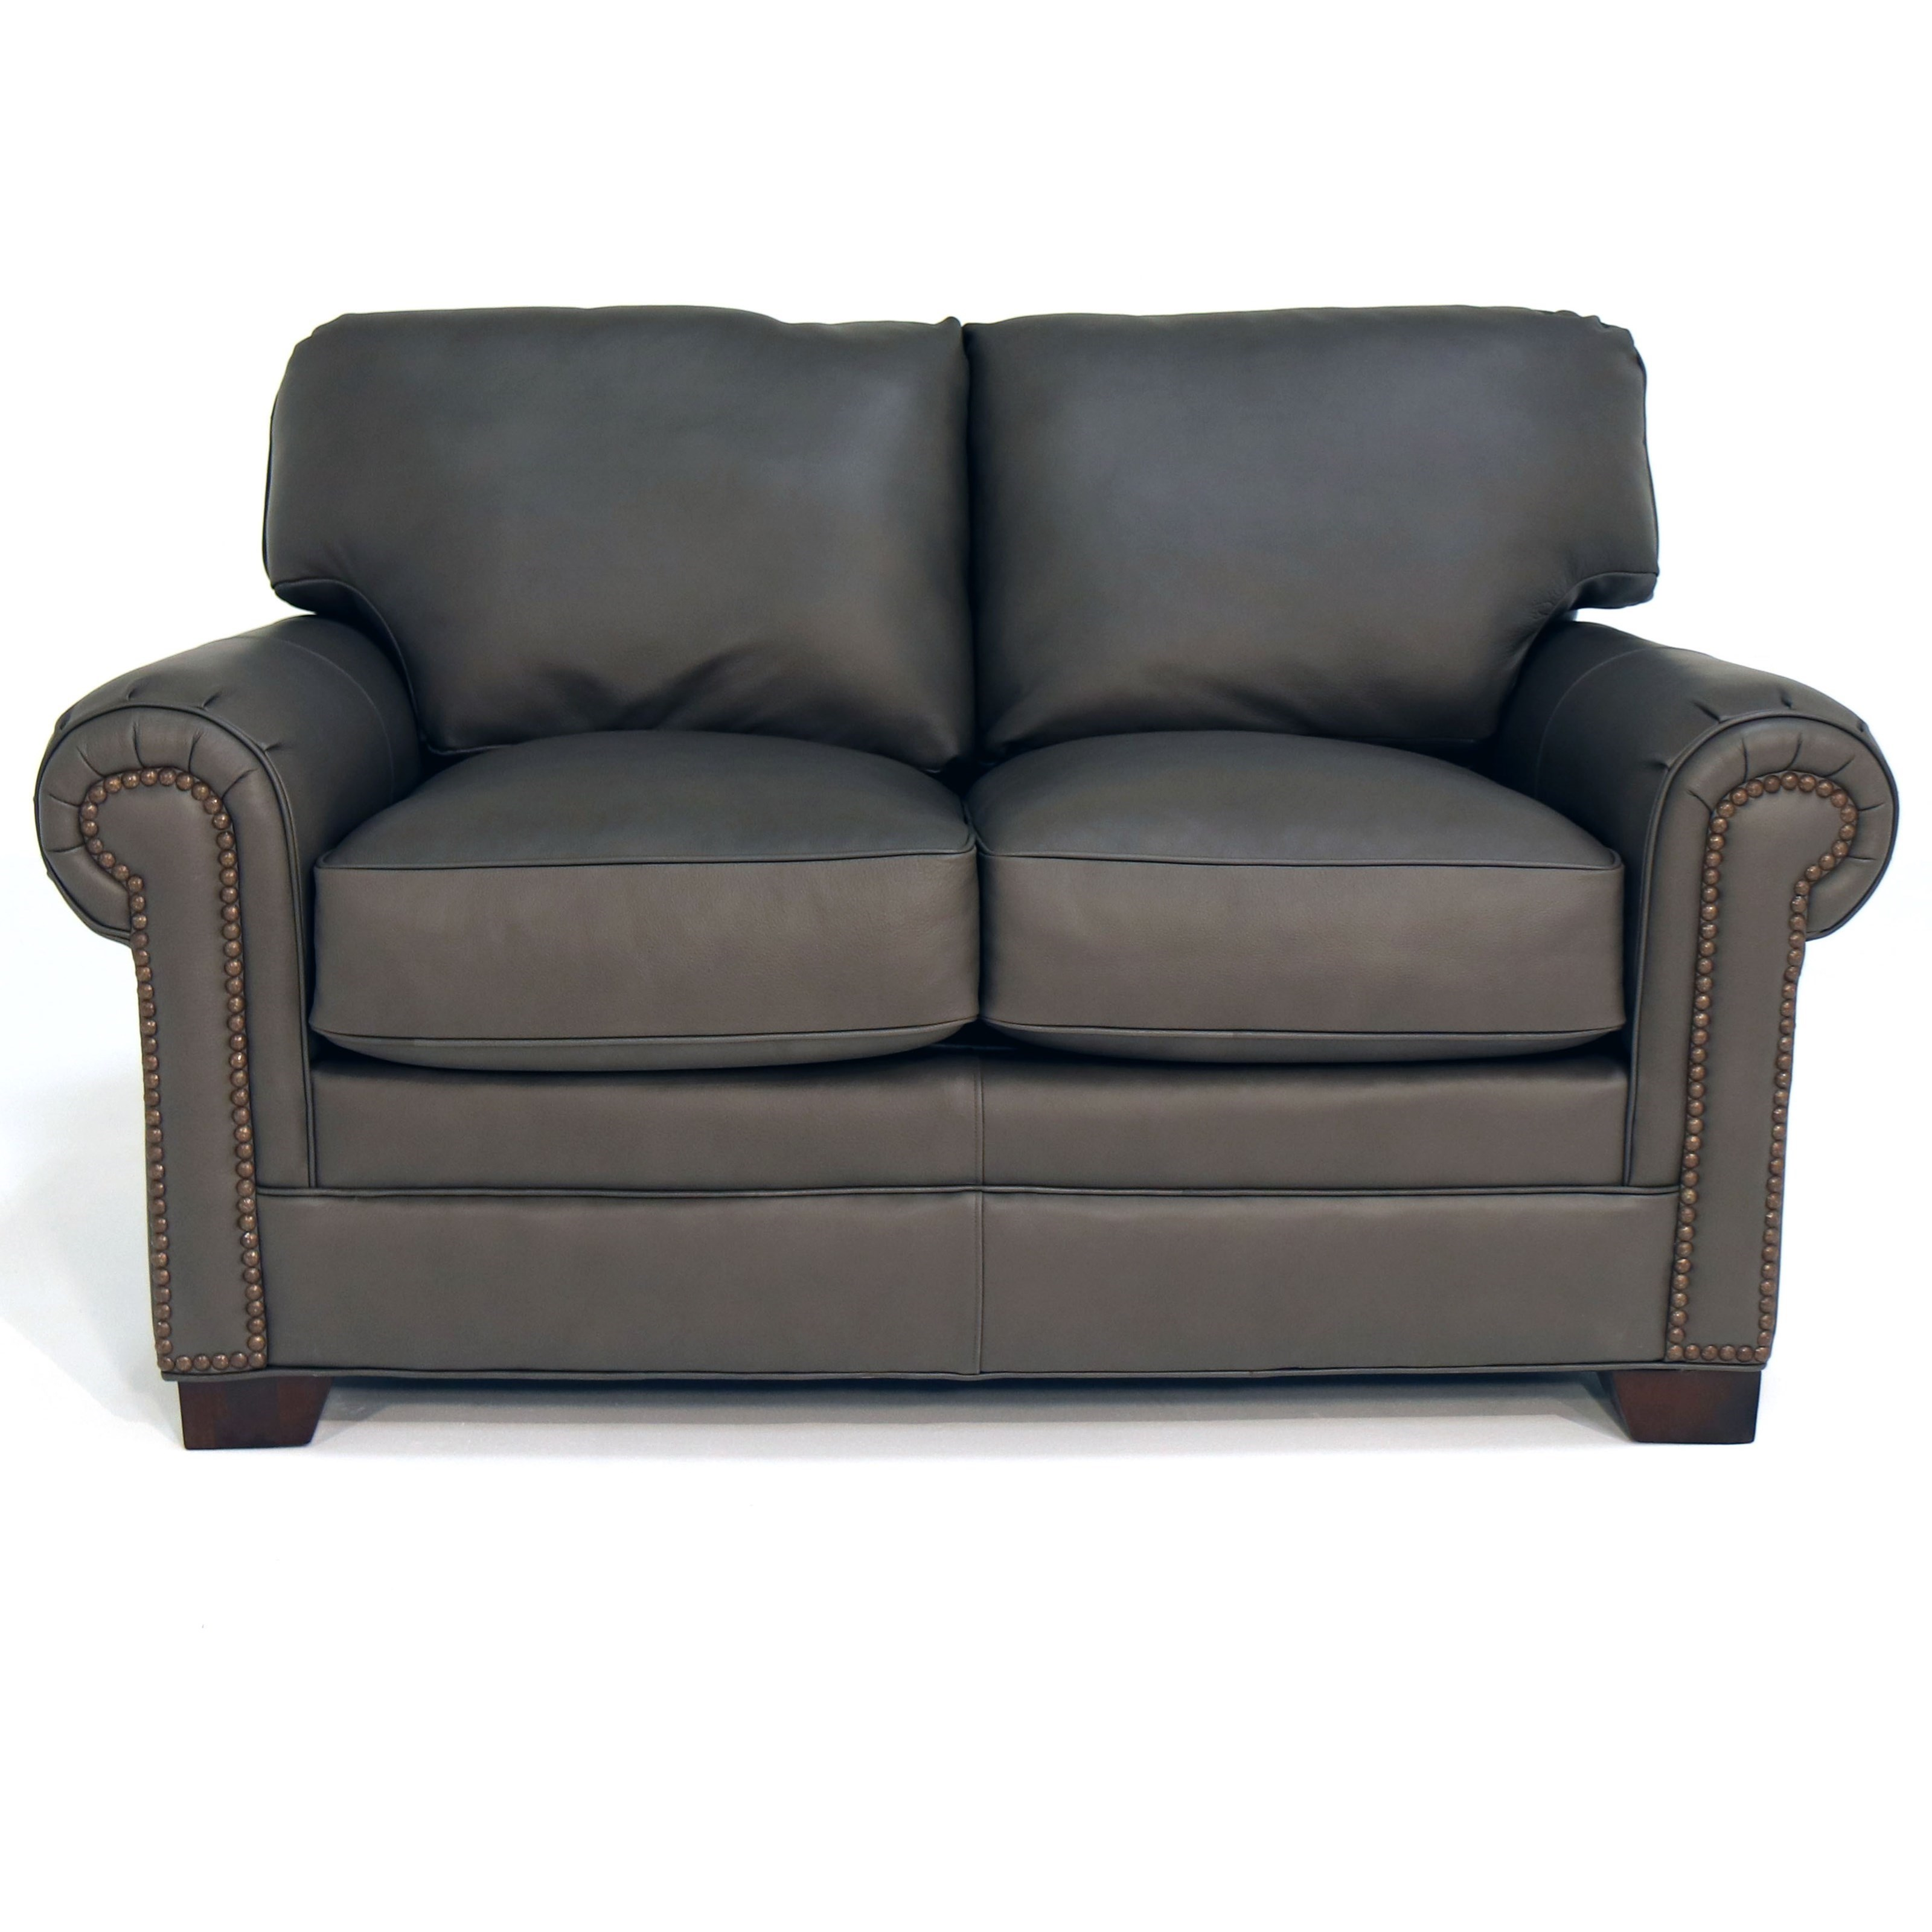 L756550 Loveseat w/ Nailheads by Craftmaster at Baer's Furniture